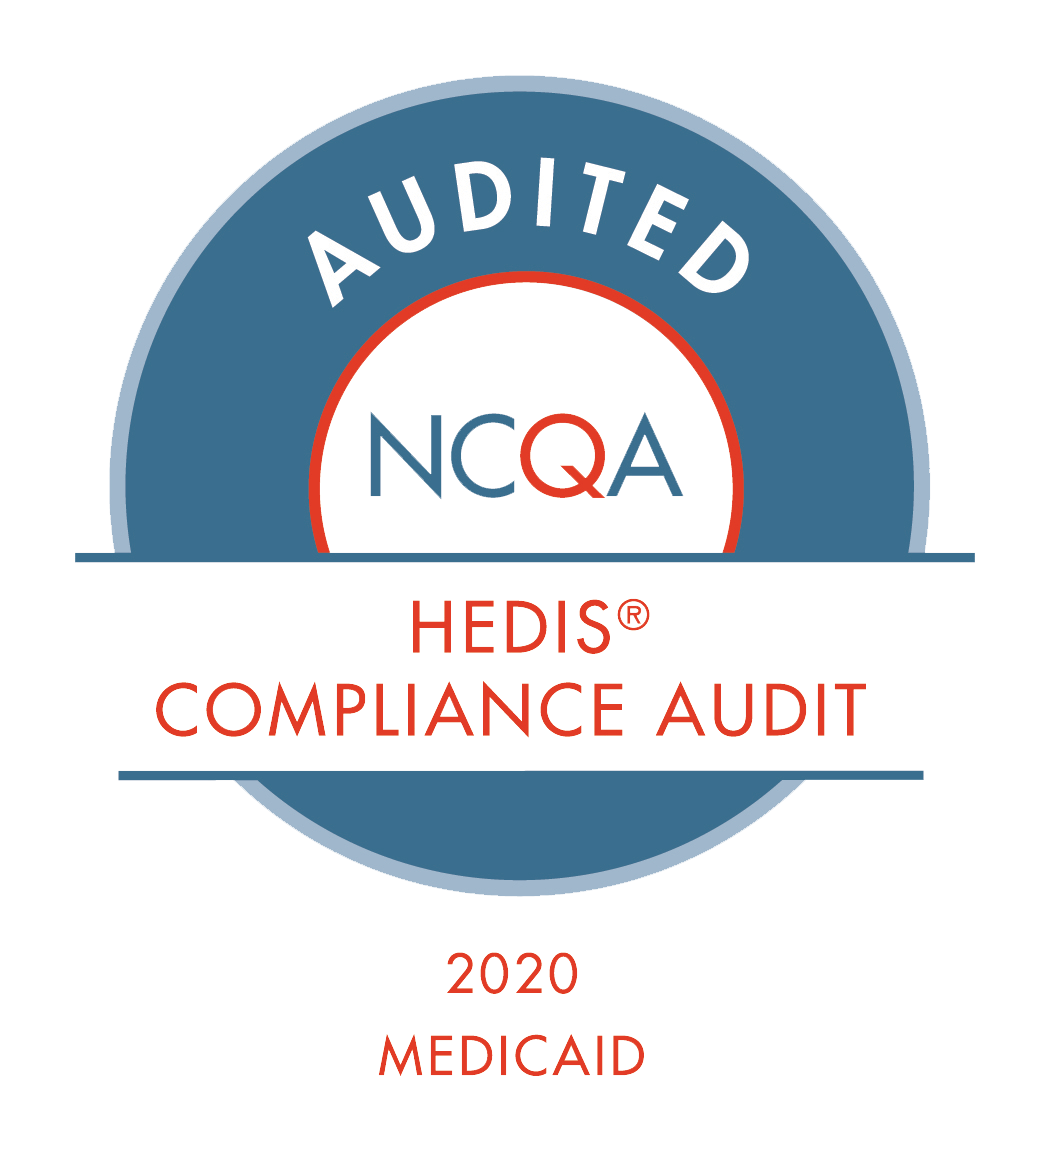 NCQA: Measuring quality. Improving health care.